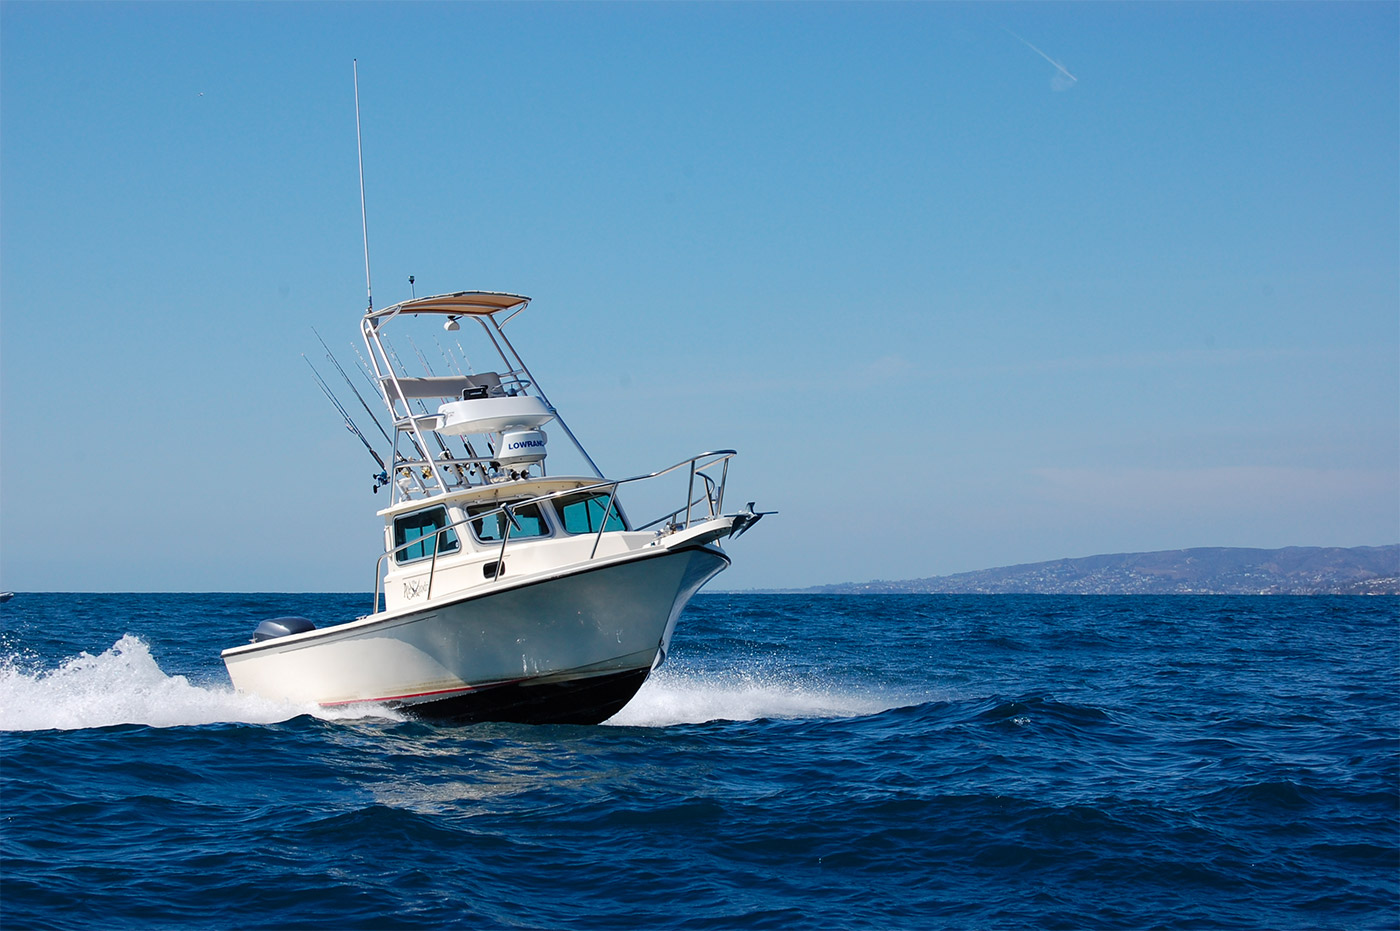 Allwater boat rentals charters dana point in dana point for Fishing dana point